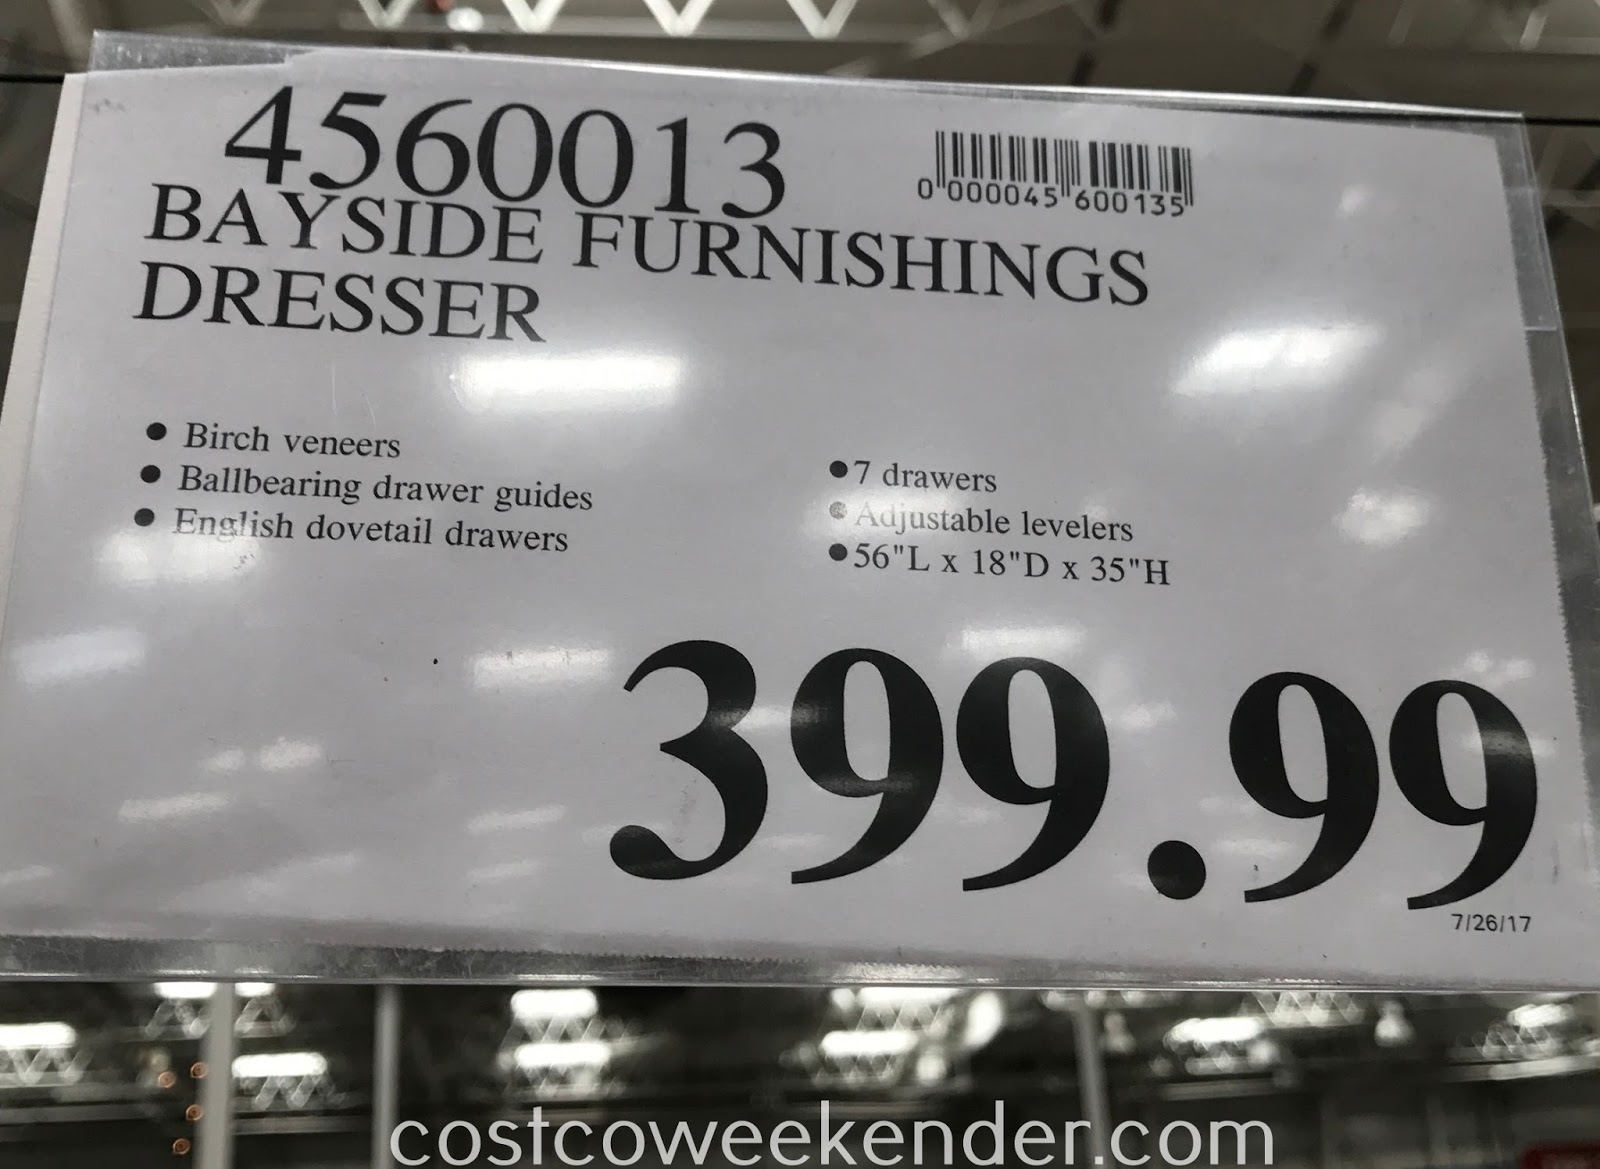 Deal for the Bayside Furnishings 7-Drawer Dresser at Costco